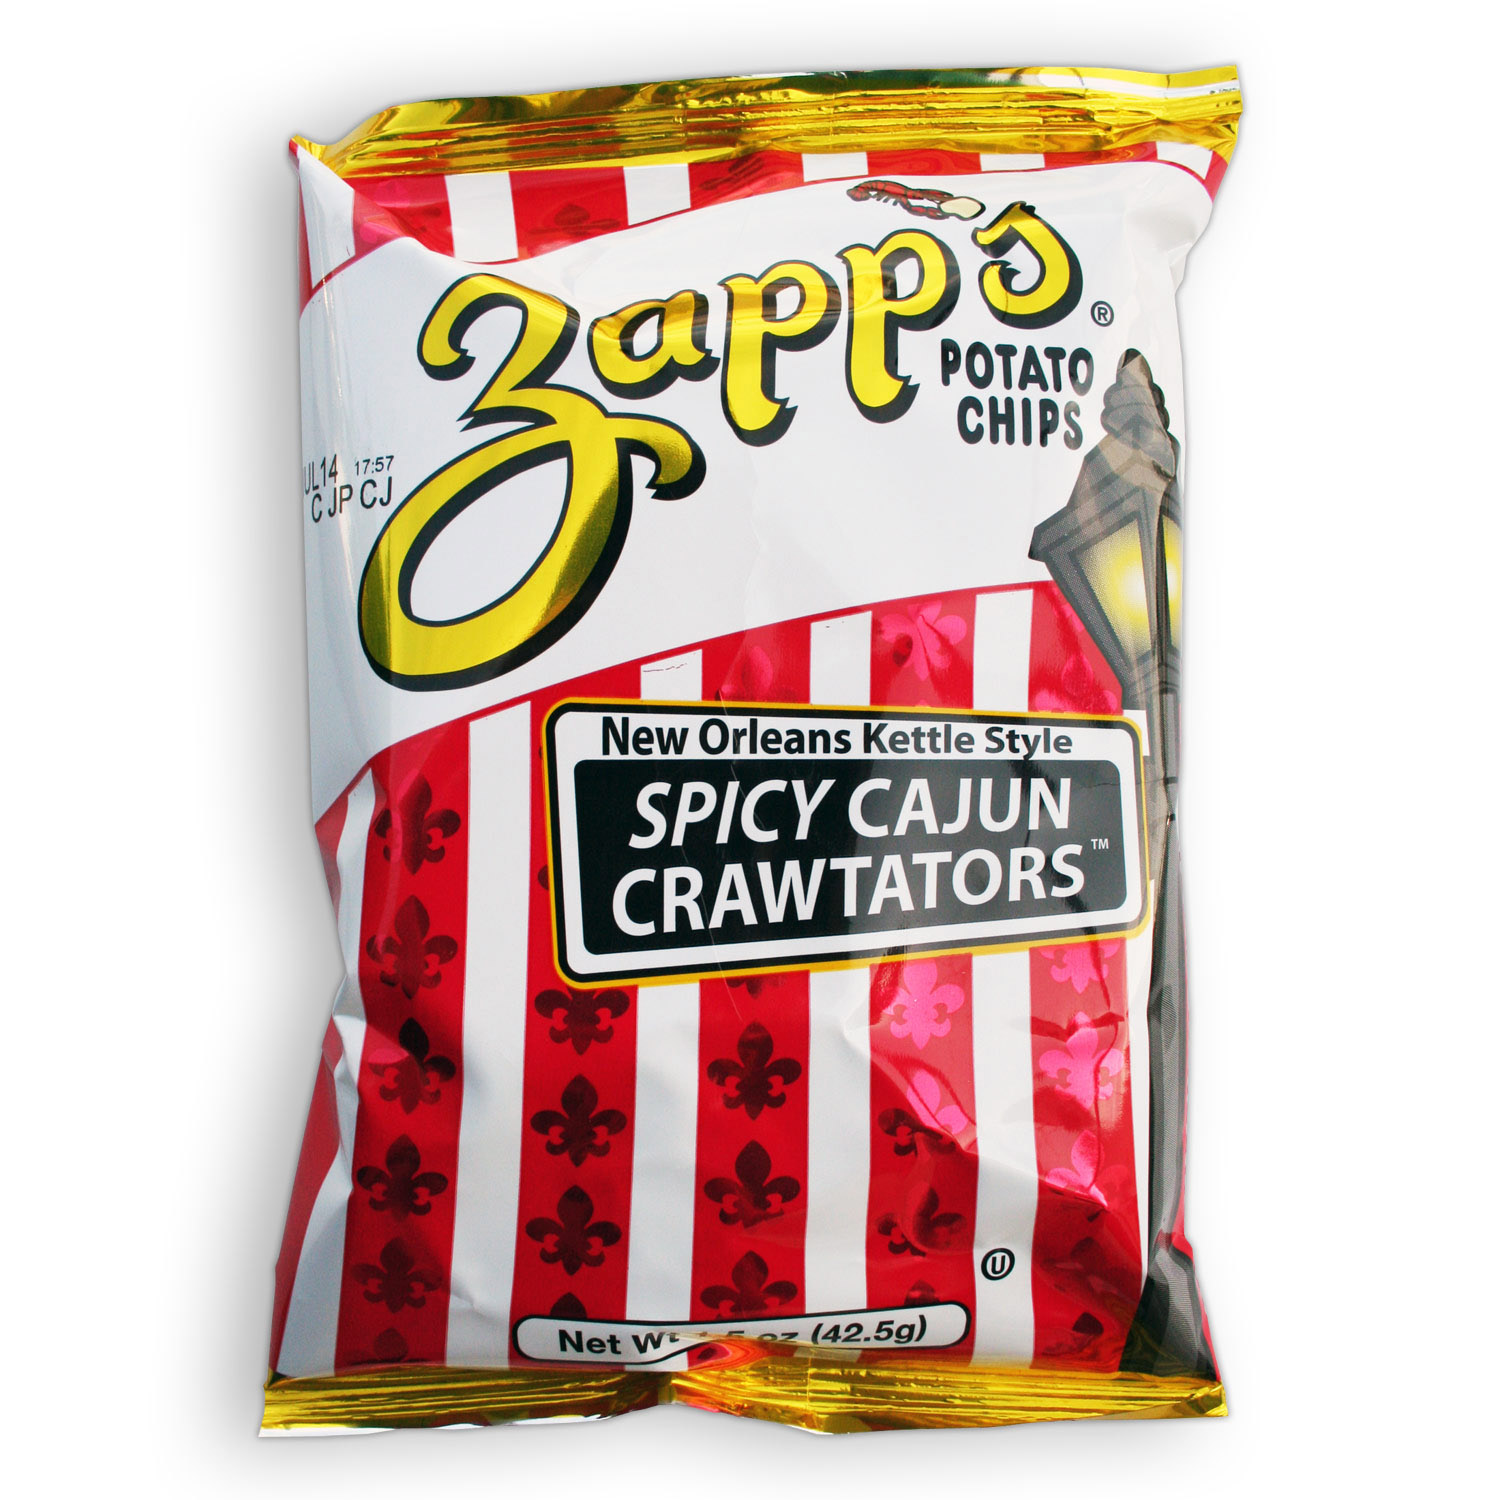 Zapps Potato Chips - Spicy Cajun Crawtators - 1.5 oz (Pack of 6)